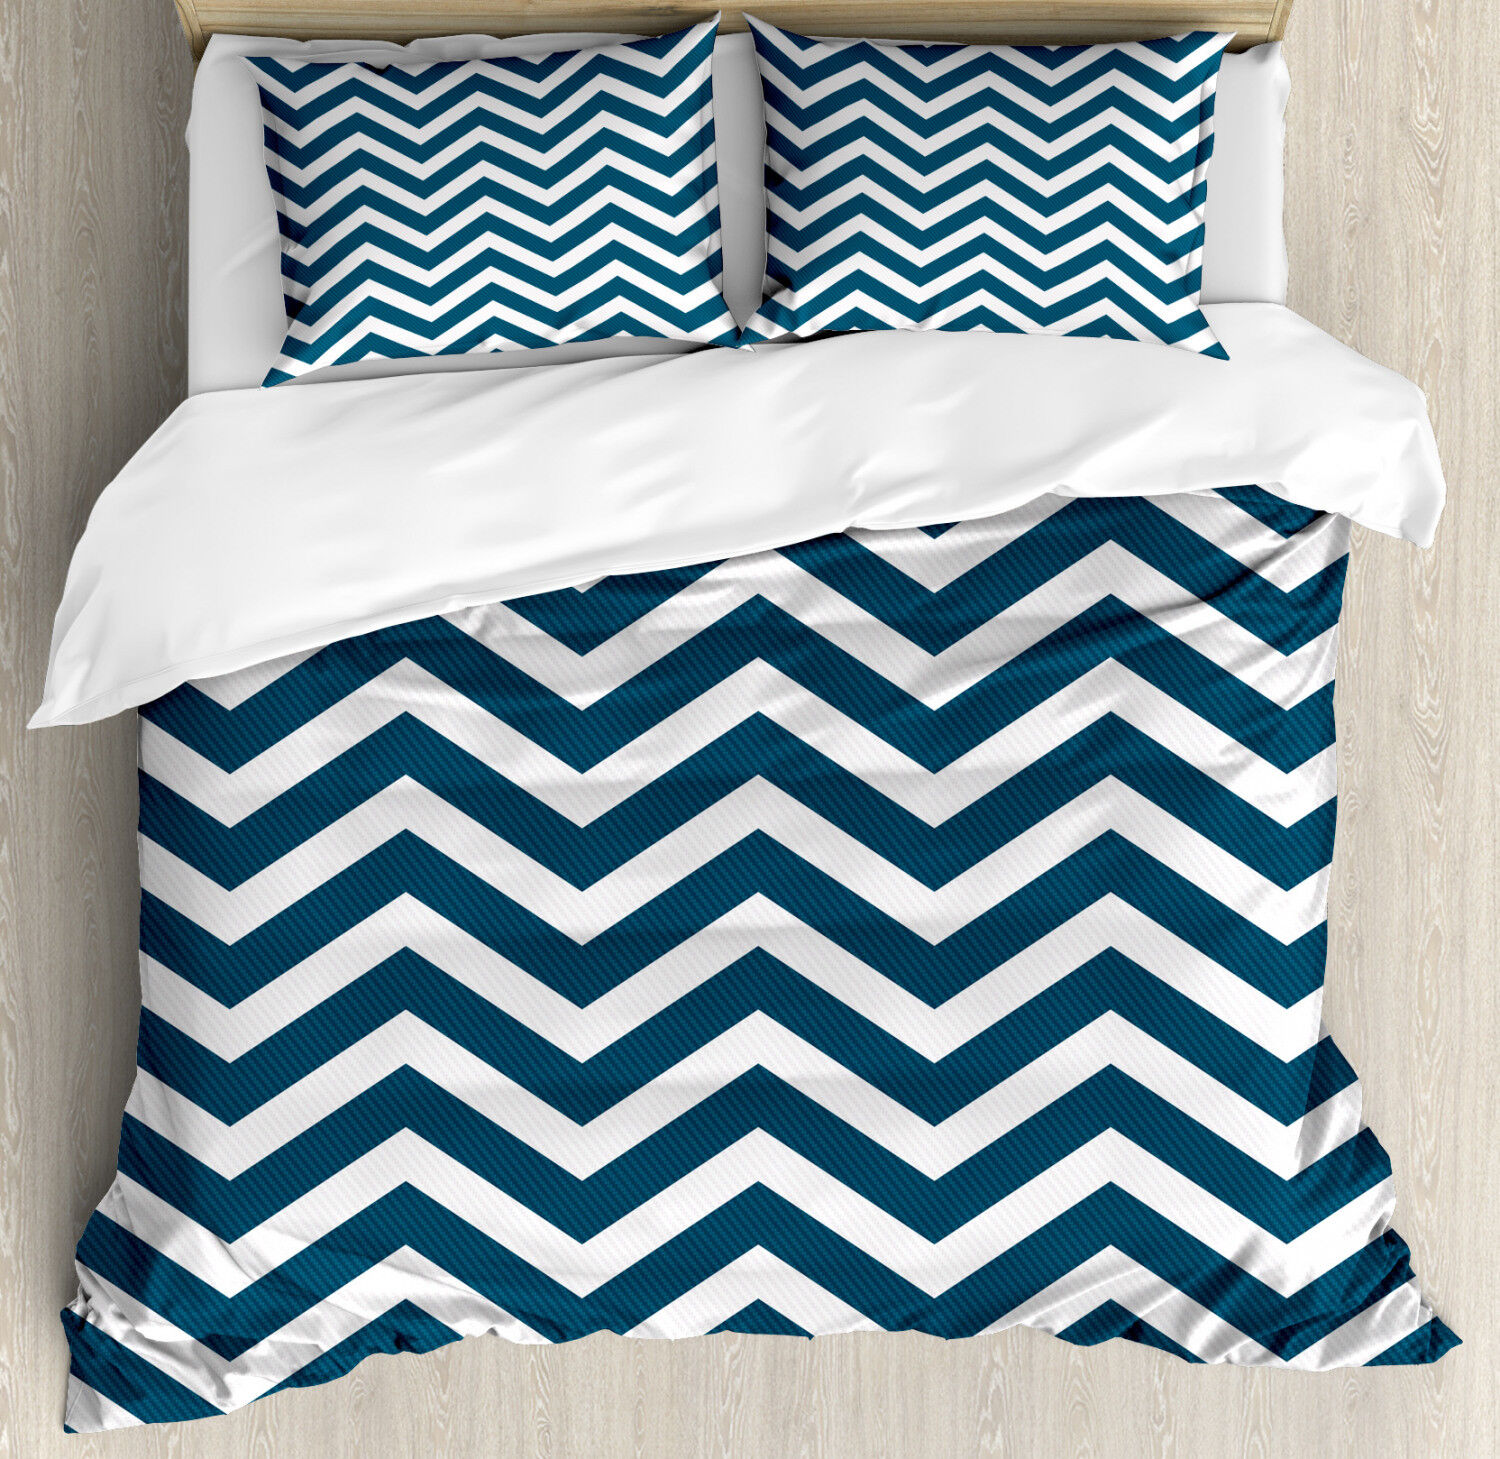 Navy Duvet Cover Set with Pillow Shams Zigzag Chevron blueeee Lines Print